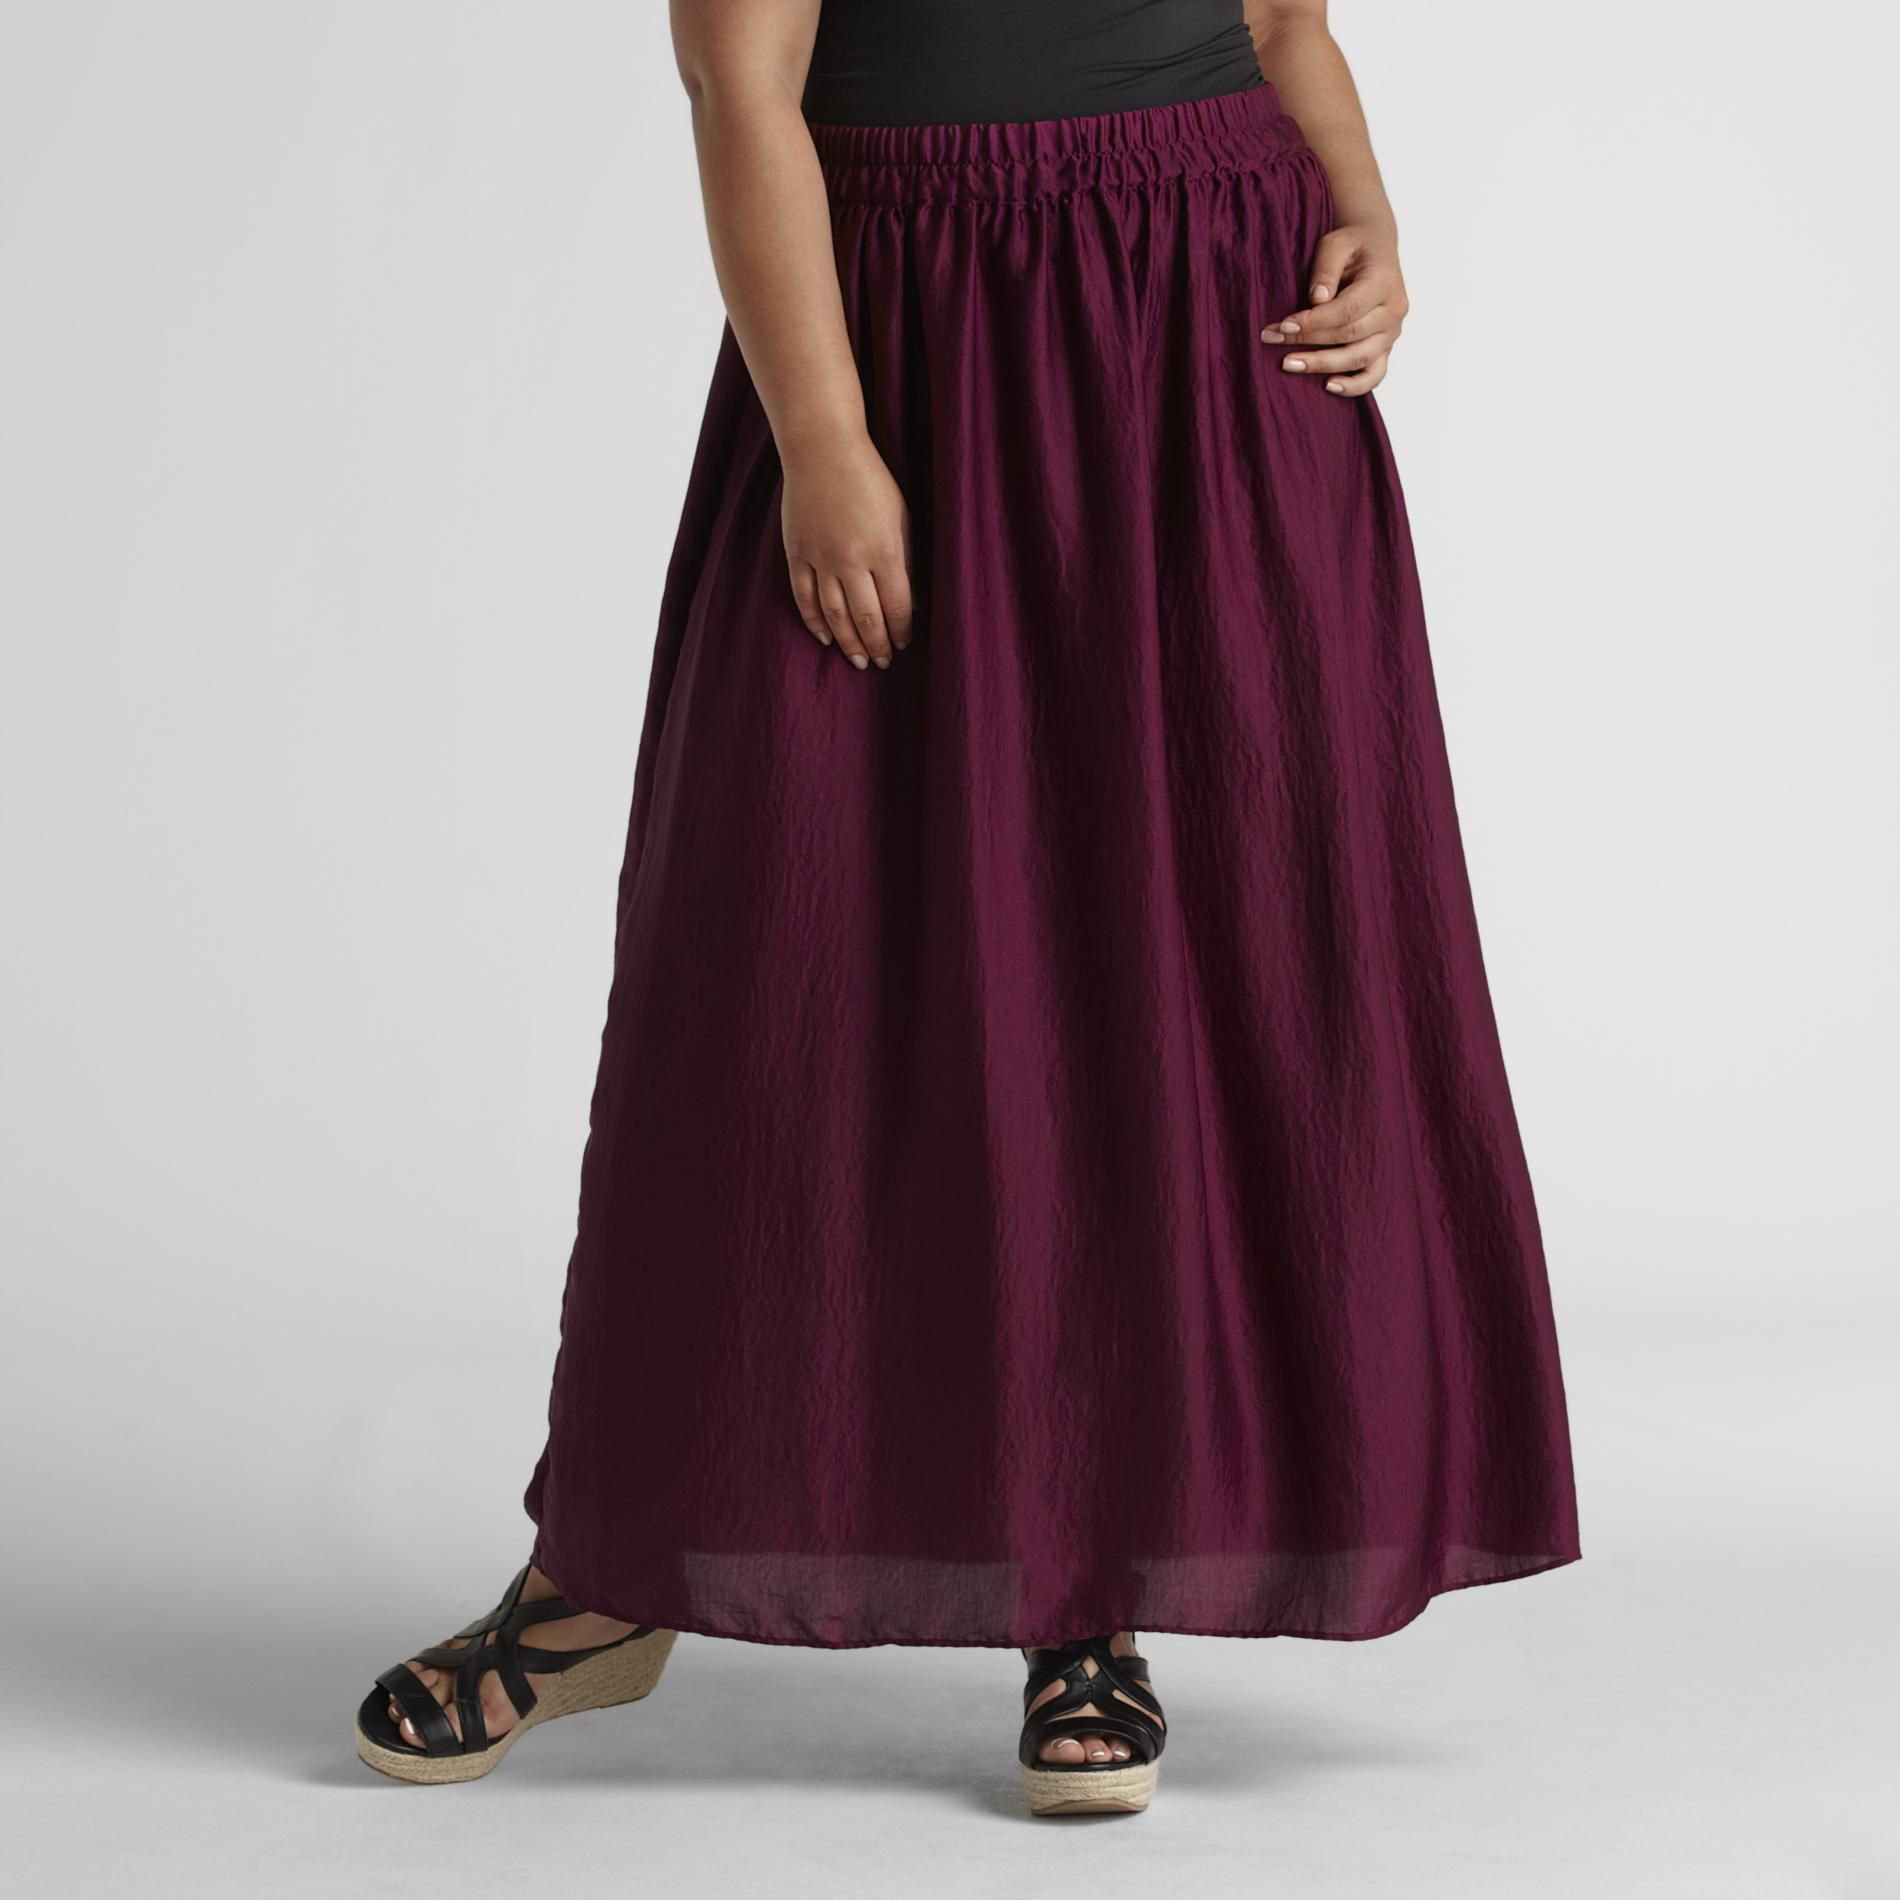 Love Your Style, Love Your Size Women's Plus Crinkled Satin Maxi Skirt